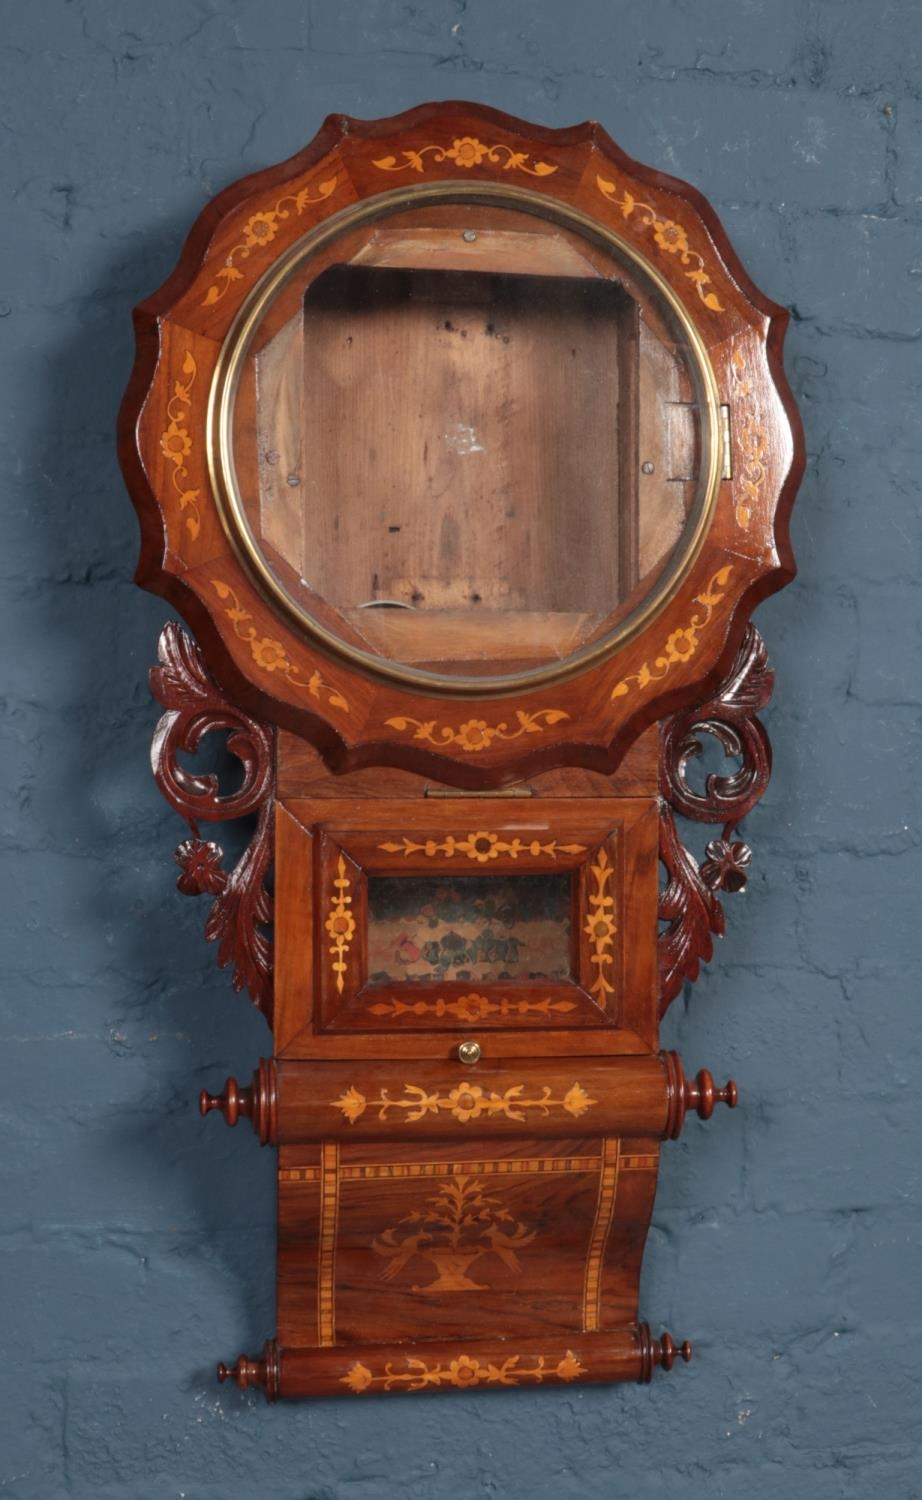 A late 19th century inlaid drop dial wall clock case. No movement or dial.